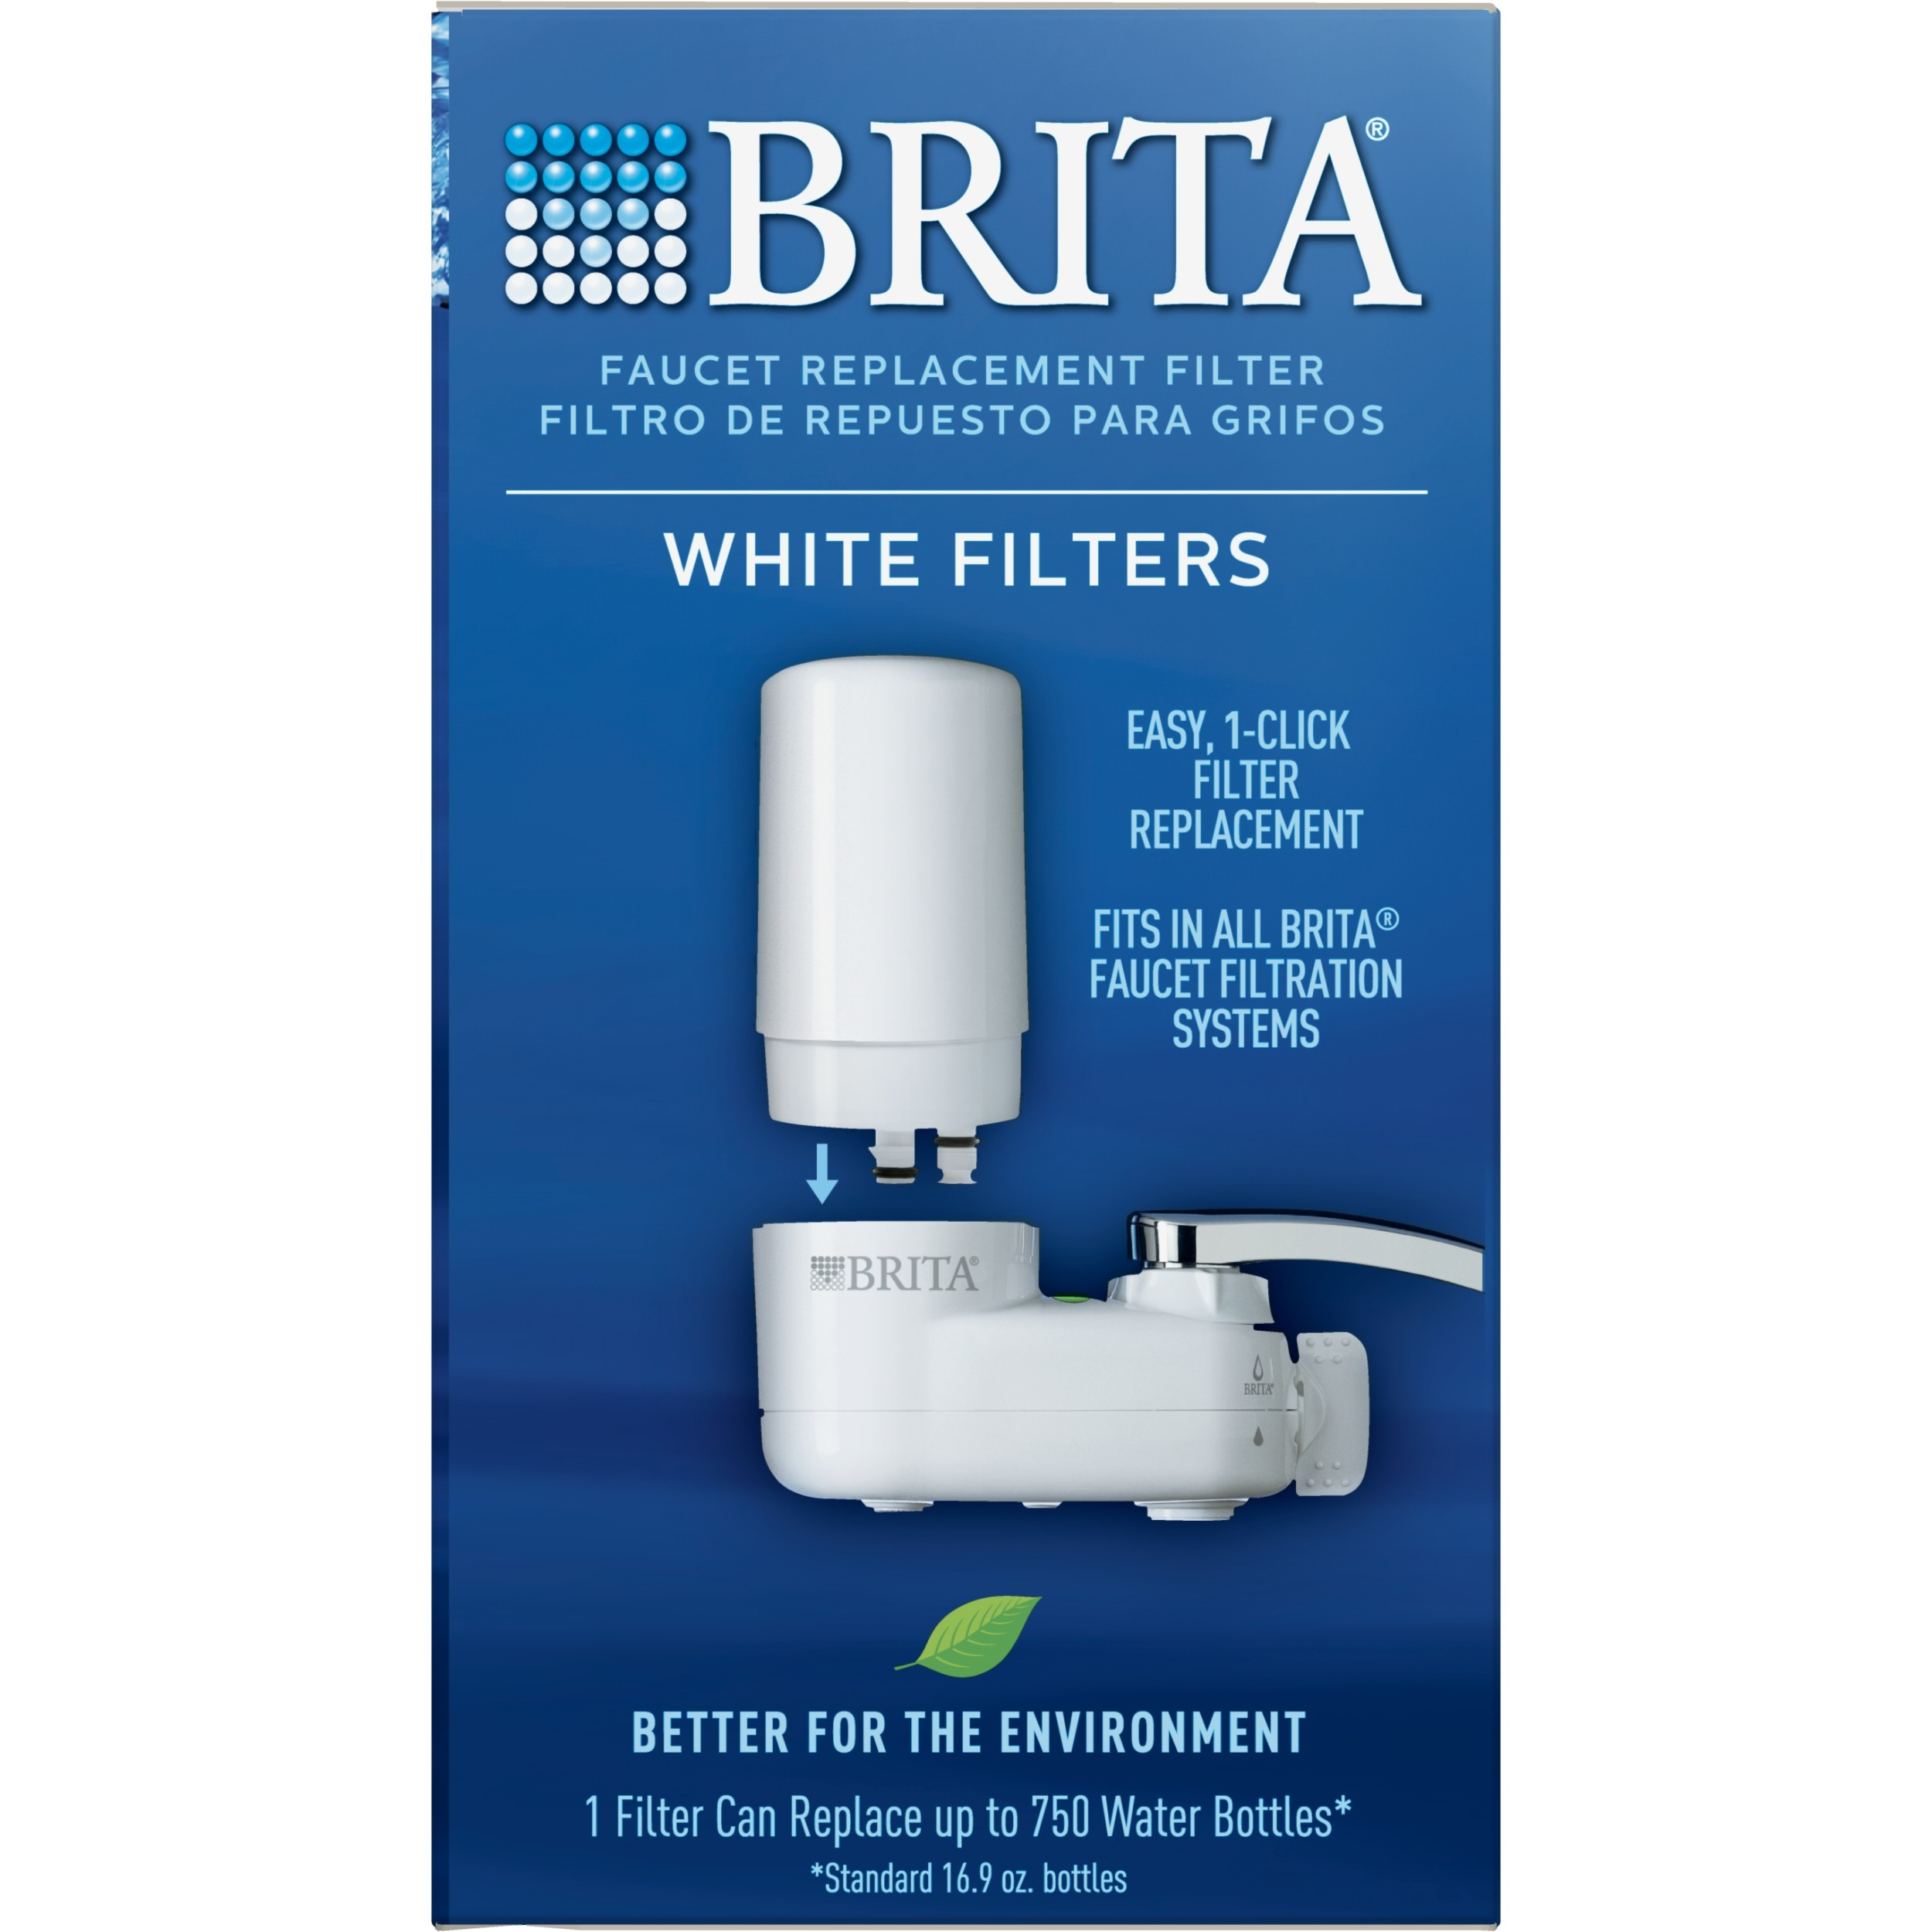 brita tap water faucet filter replacement 2 count white